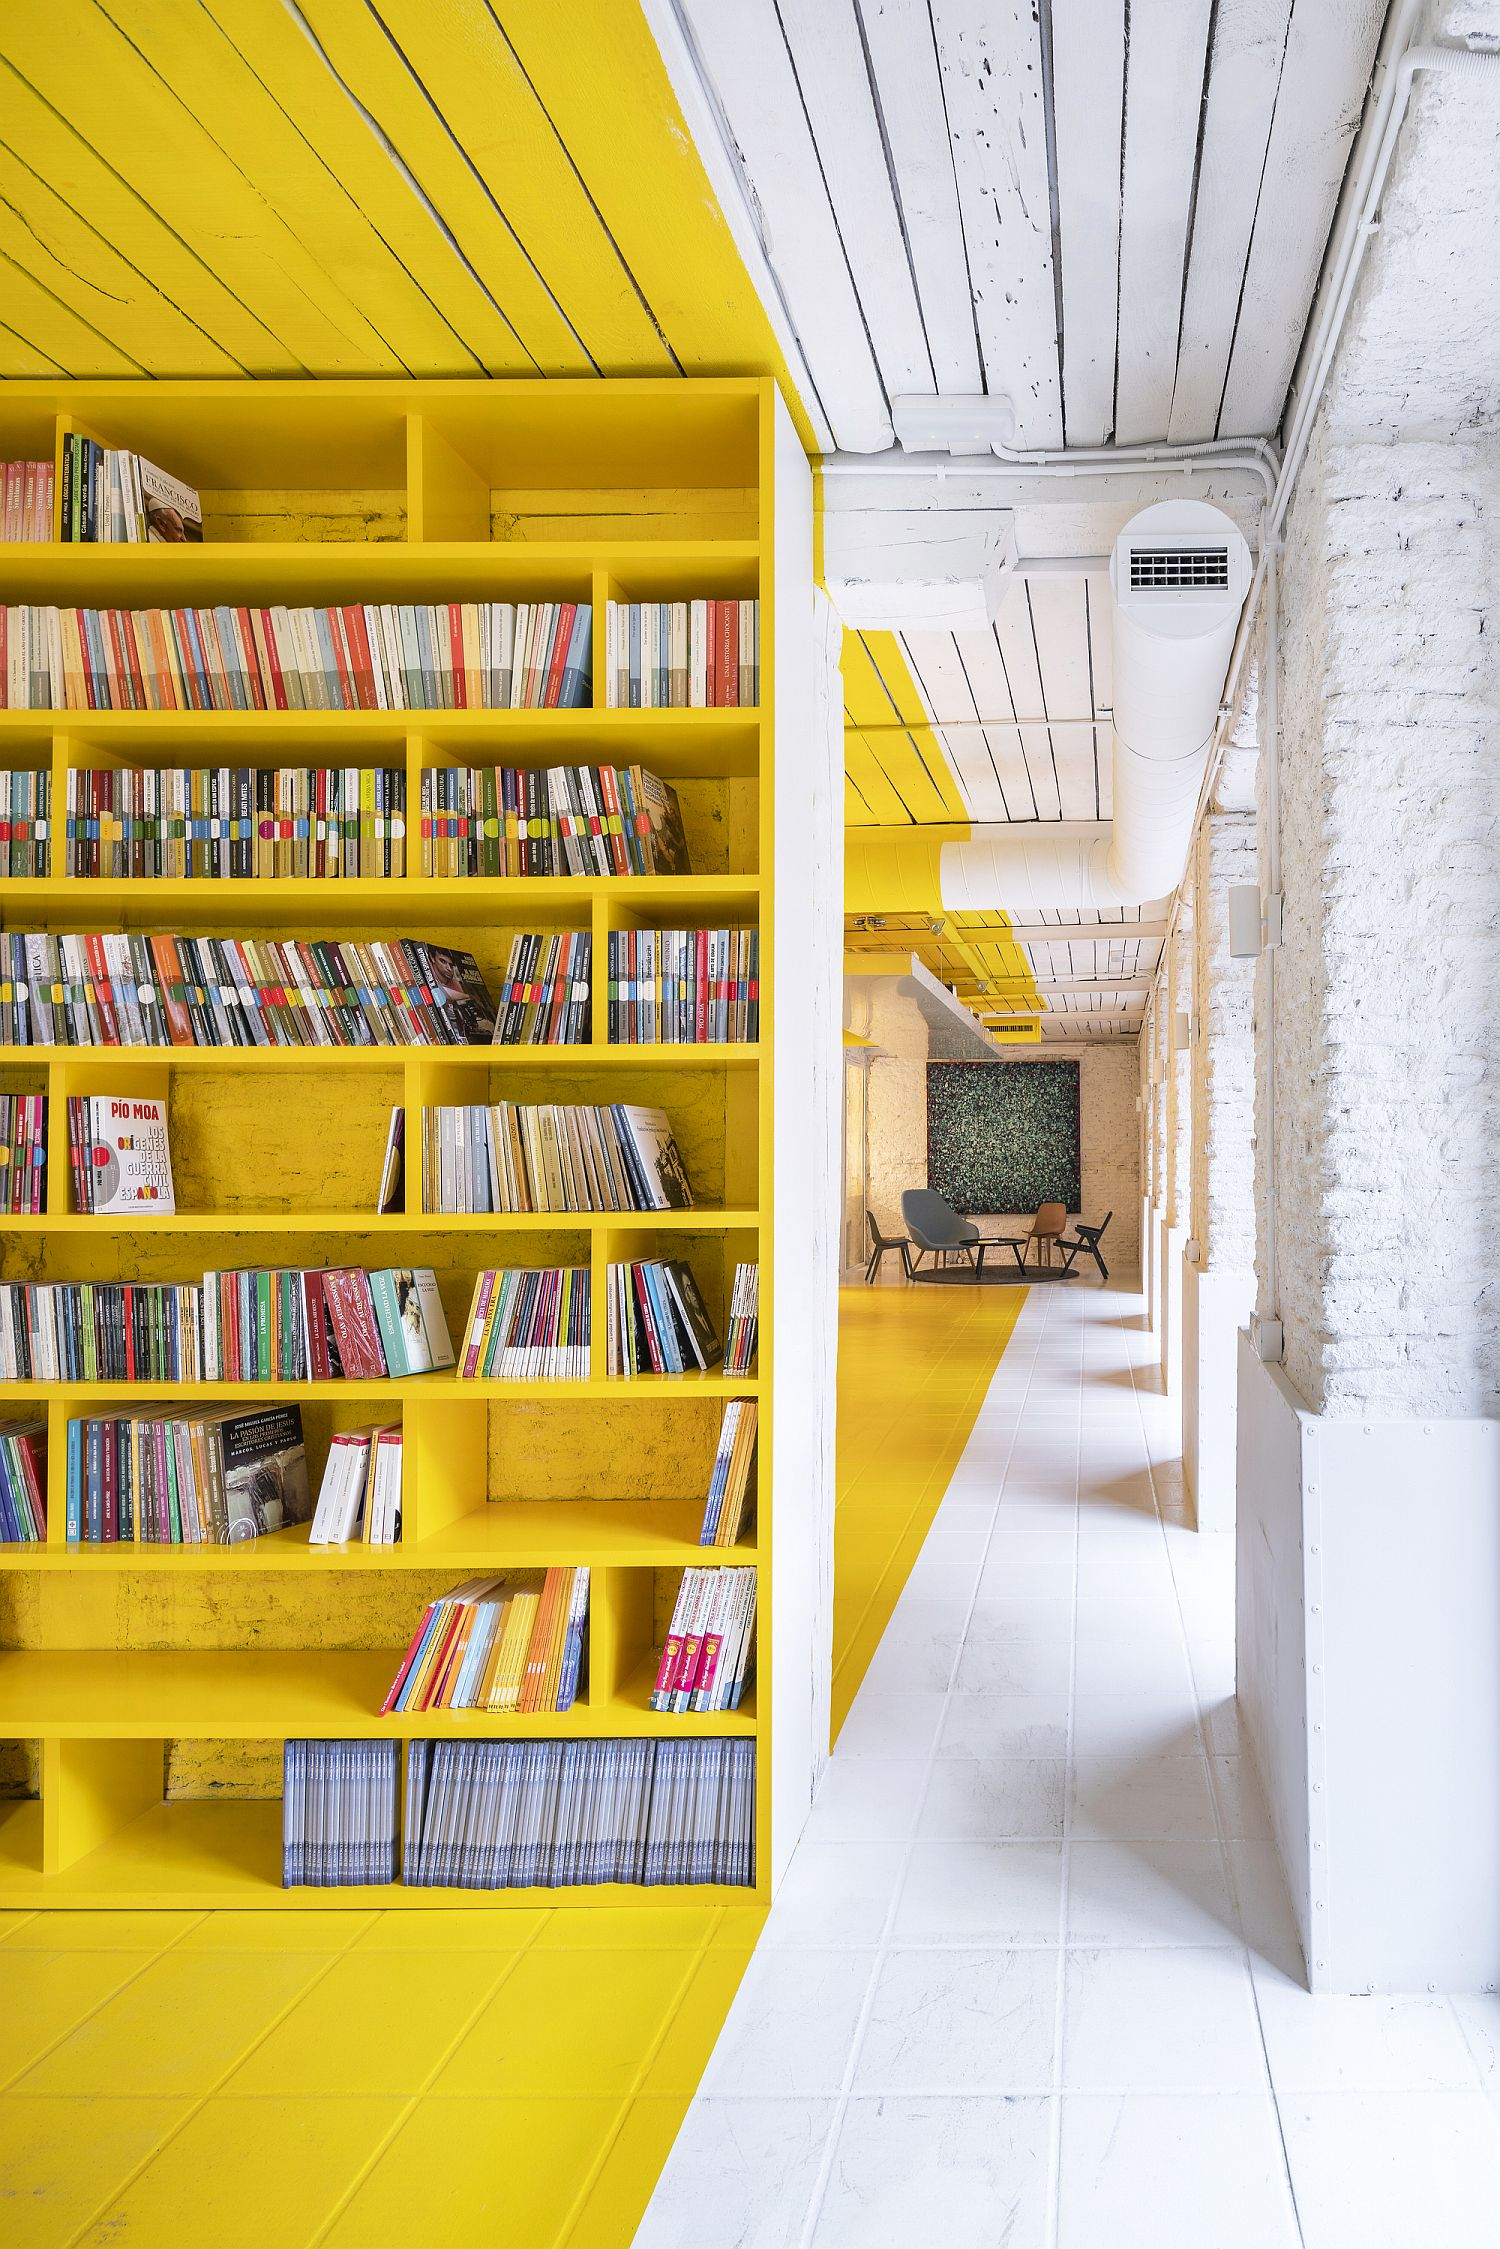 1562236172 877 amazing use of yellow for office interior meeting space in madrid - Amazing Use of Yellow for Office Interior: Meeting Space in Madrid